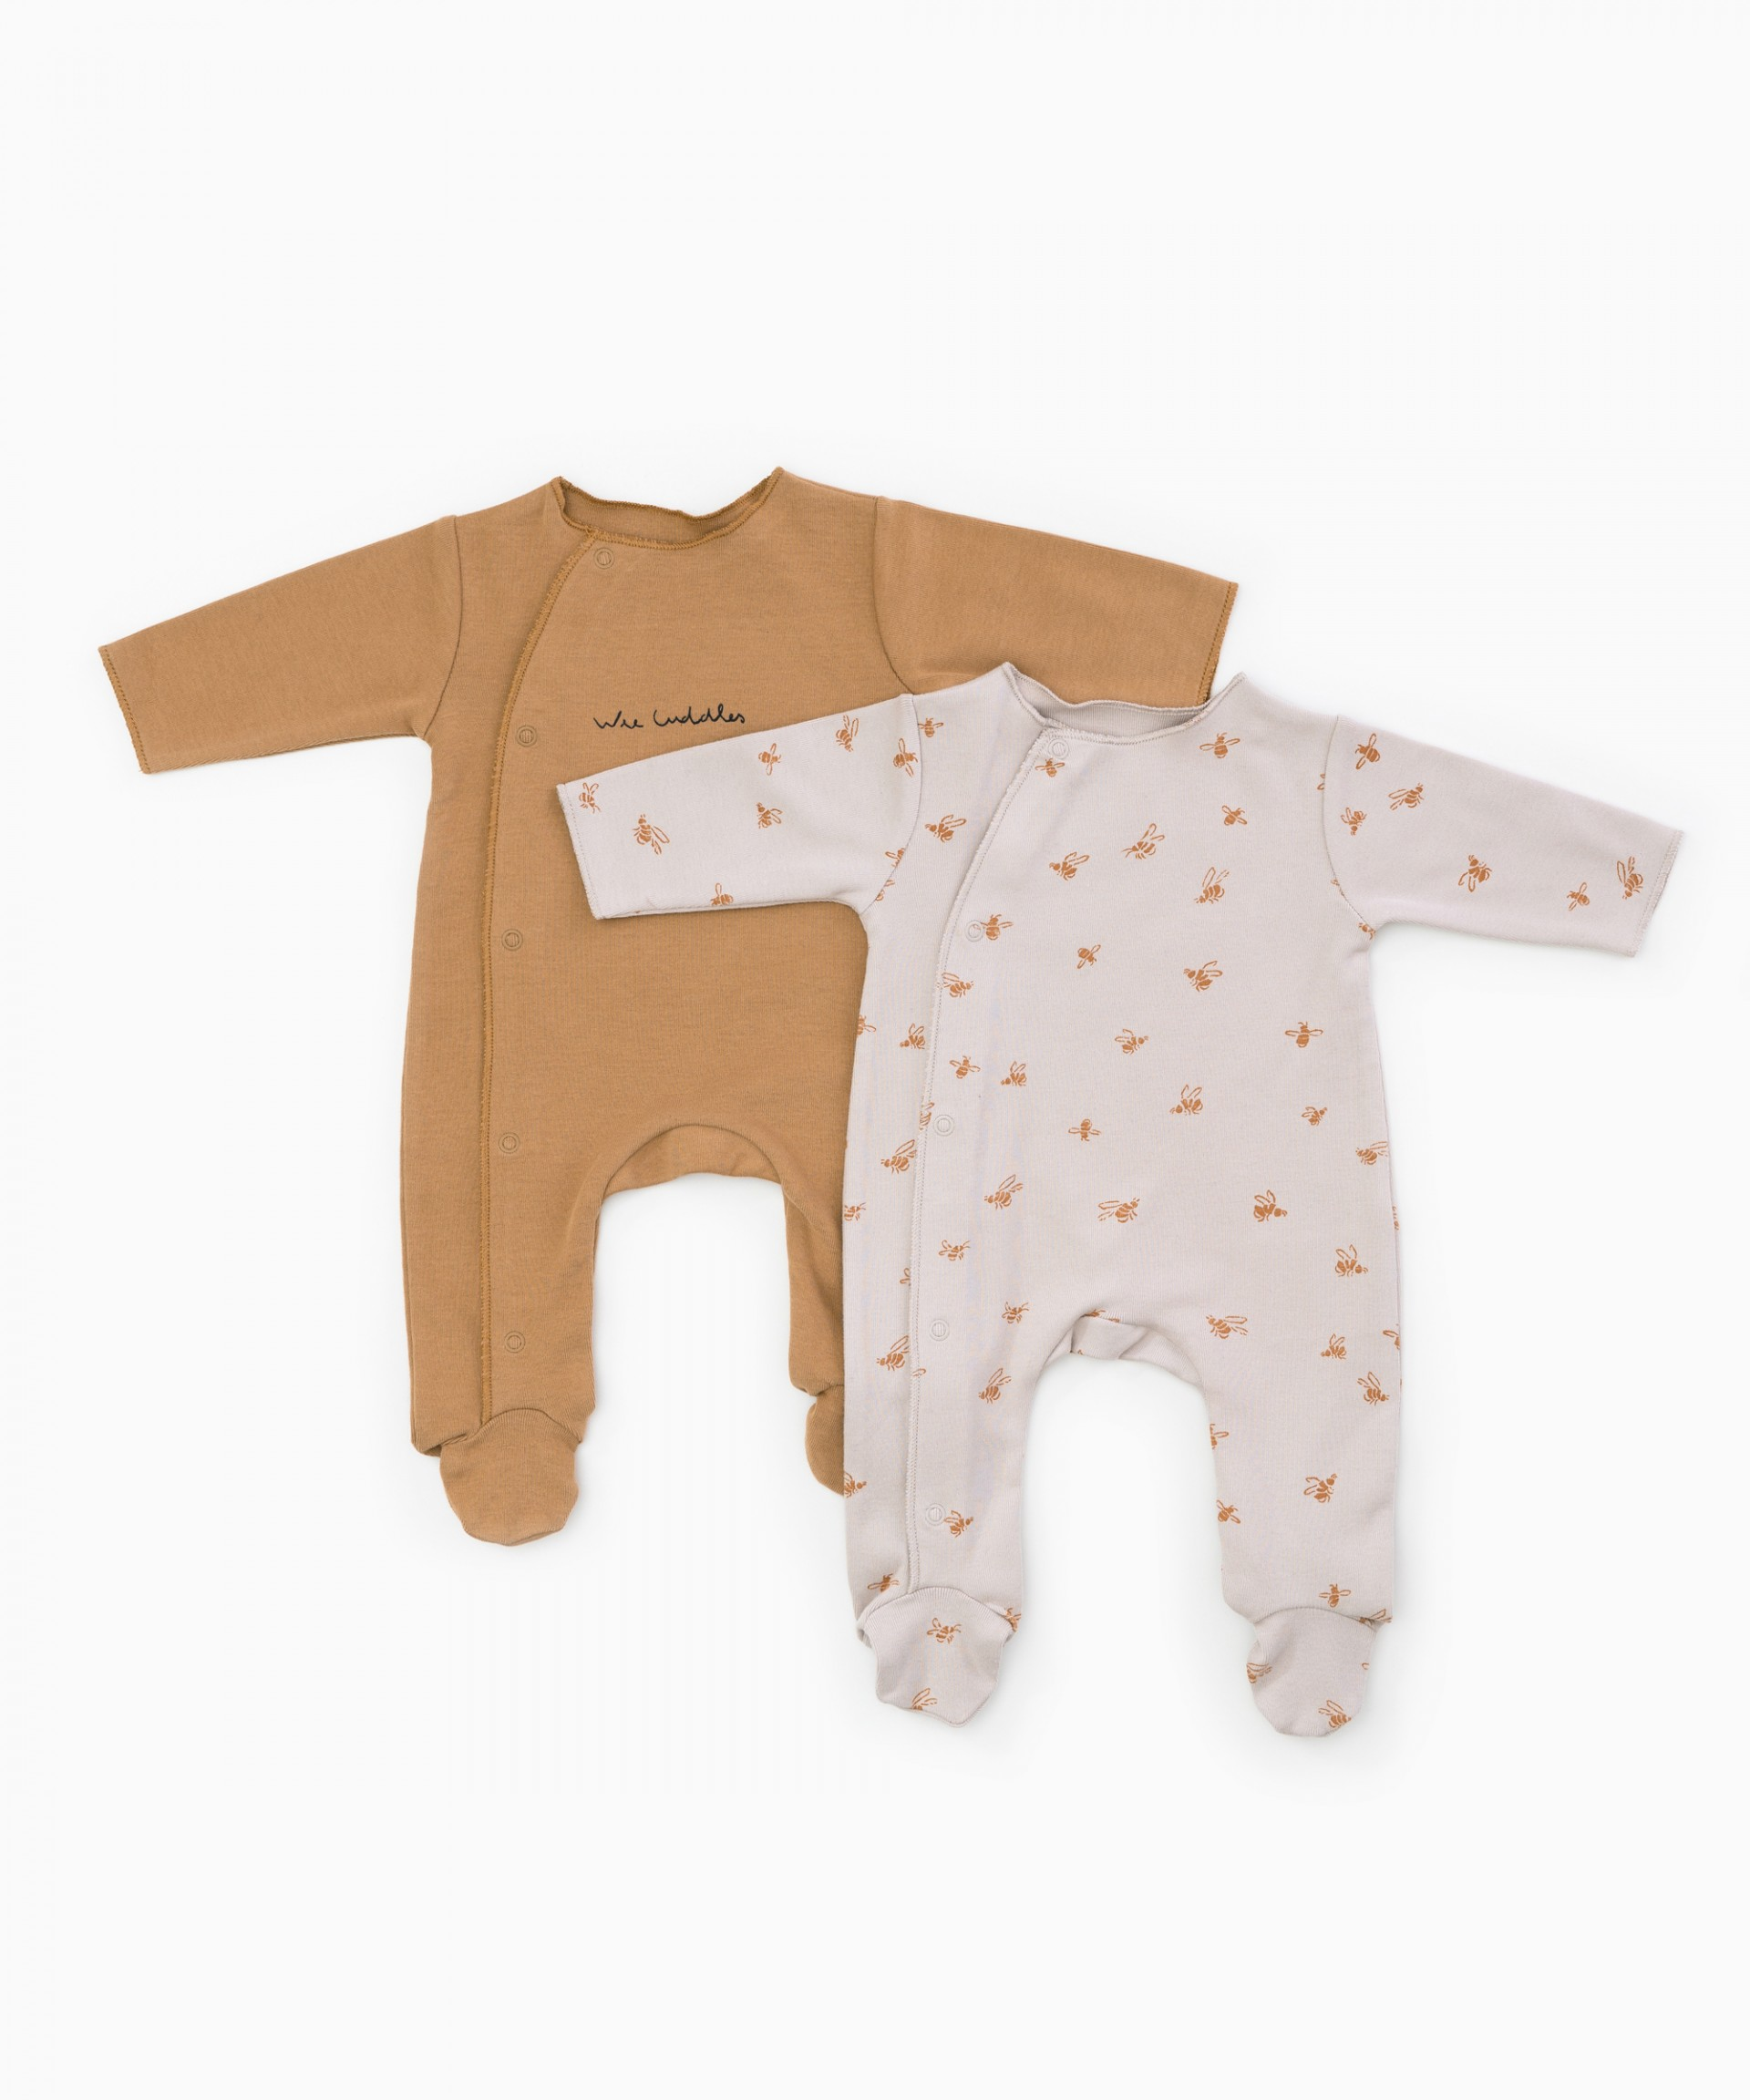 Pack of 2 printed baby grows| Woodwork